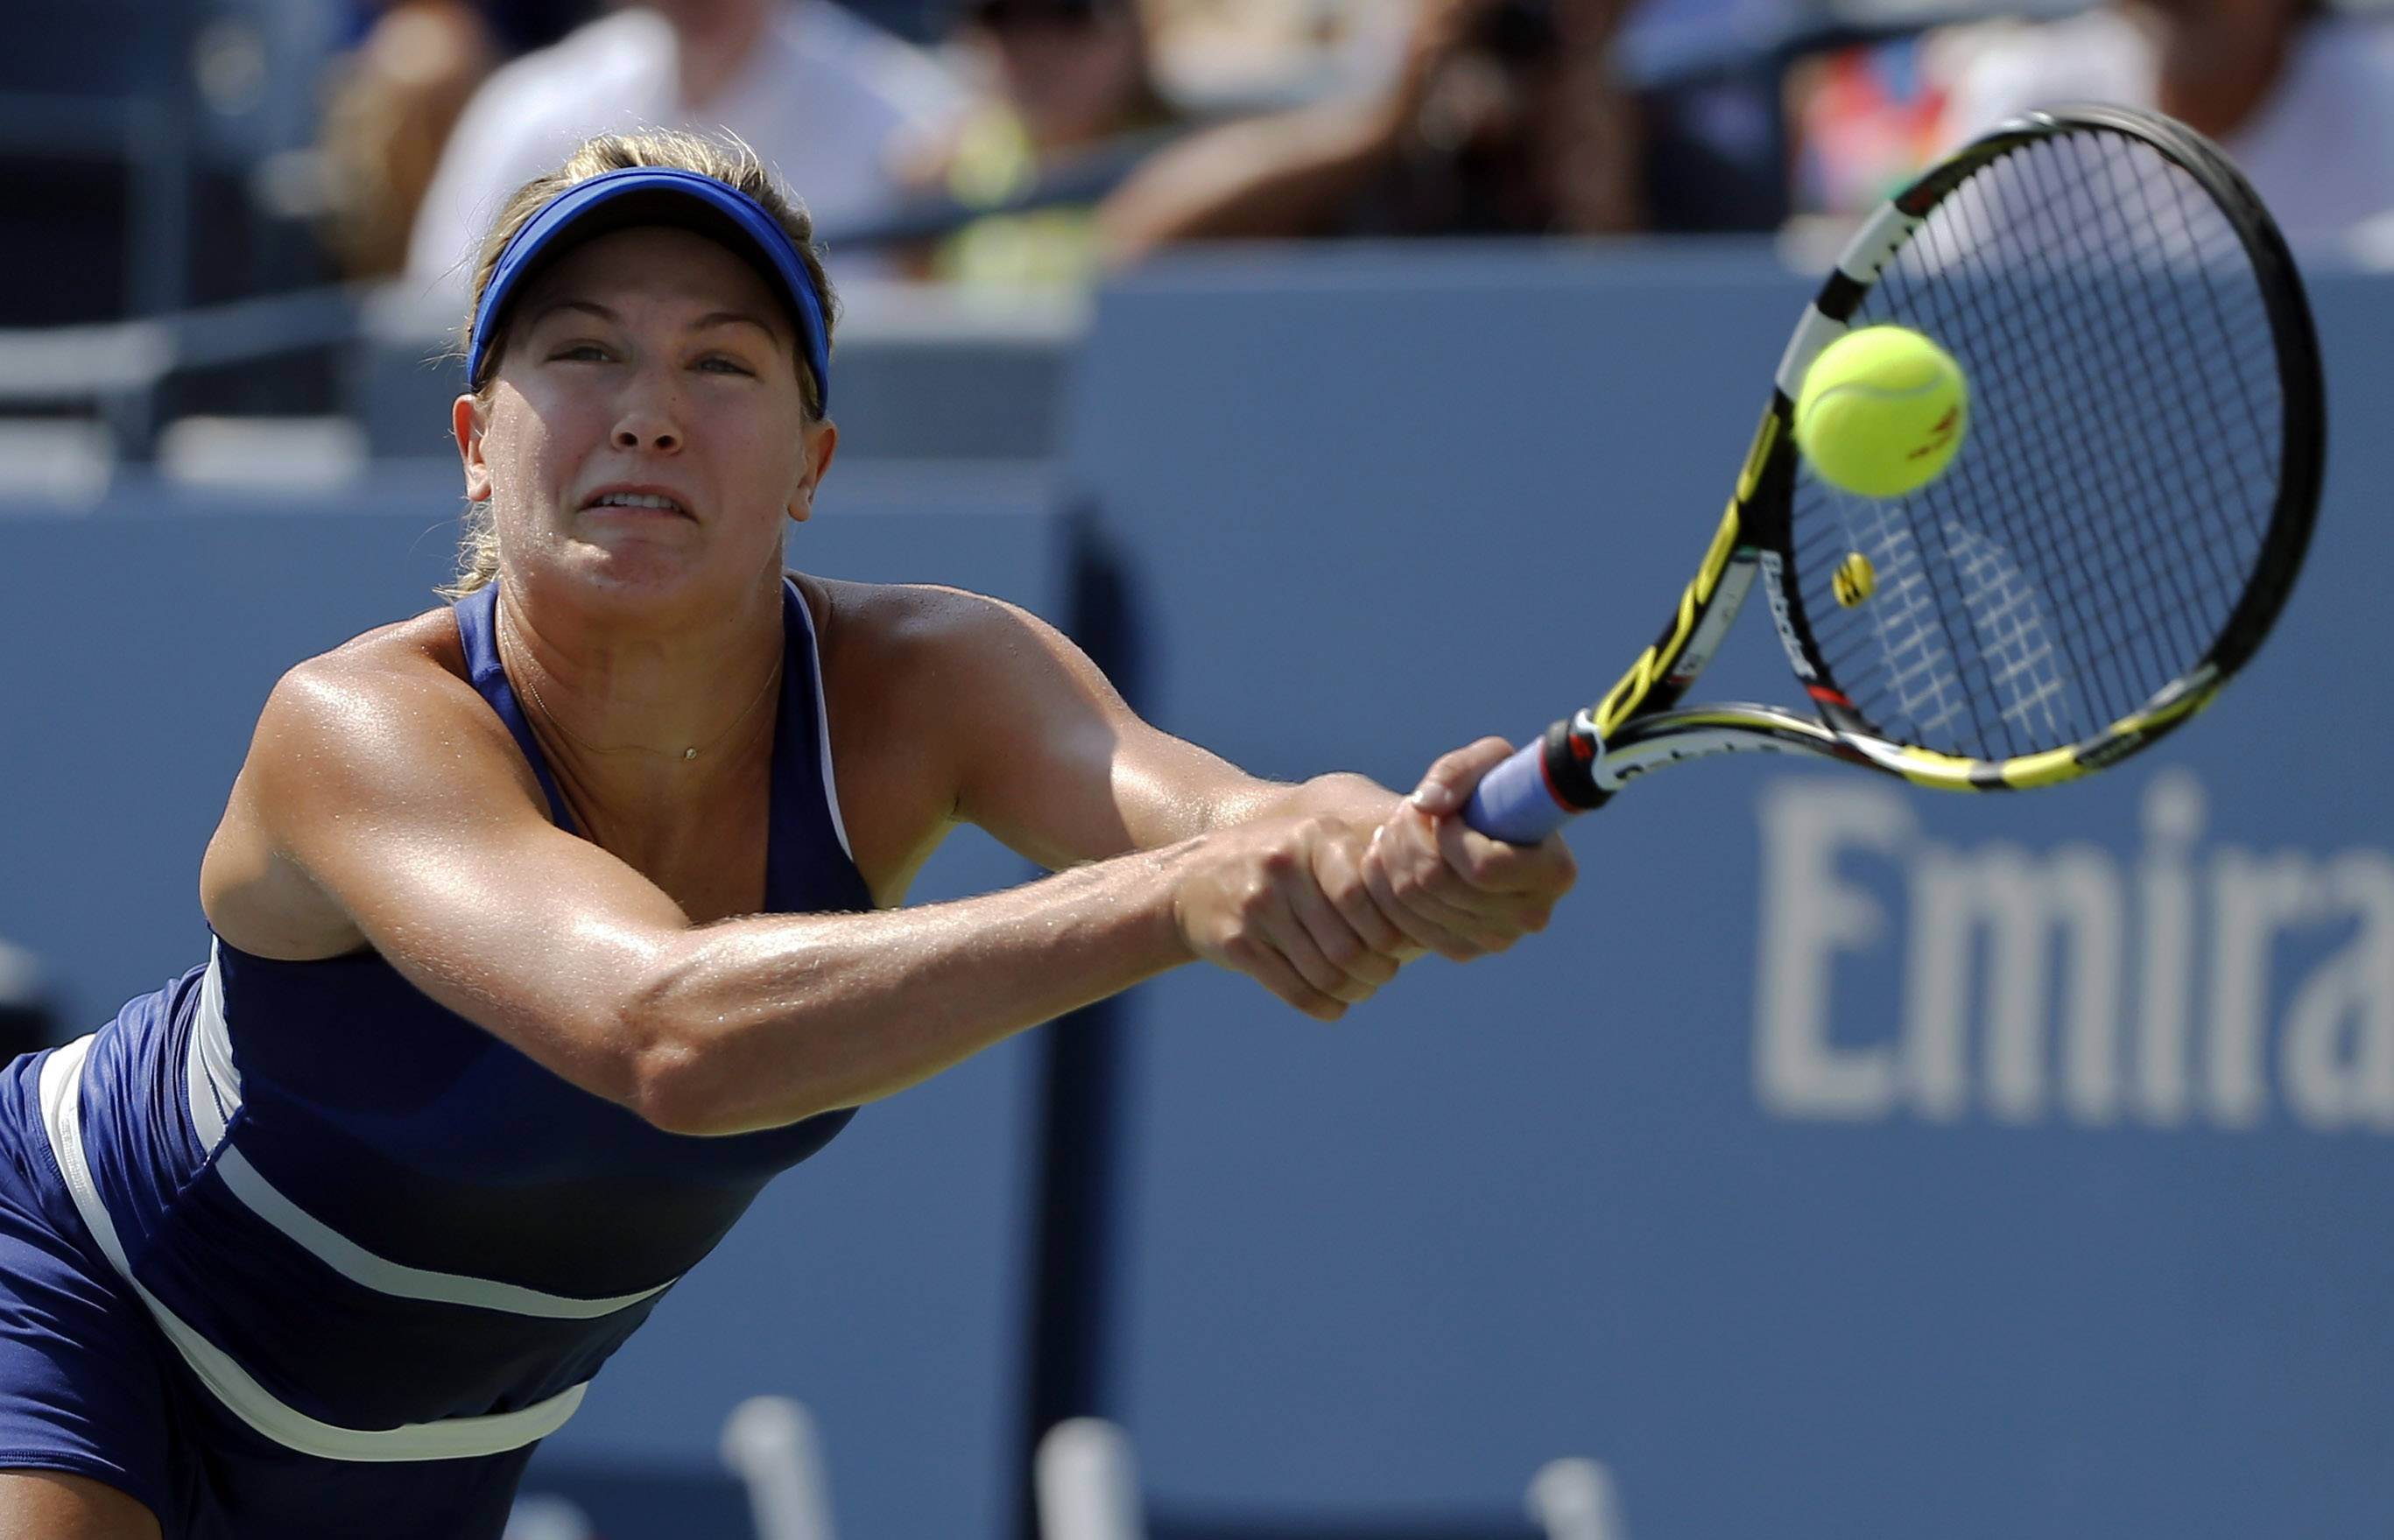 Eugenie Bouchard, of Canada, returns a shot against Olga Govortsova, of Belarus, during the first round of the 2014 U.S. Open tennis tournament, Tuesday, Aug. 26, 2014, in New York. (AP Photo/Elise Amendola)